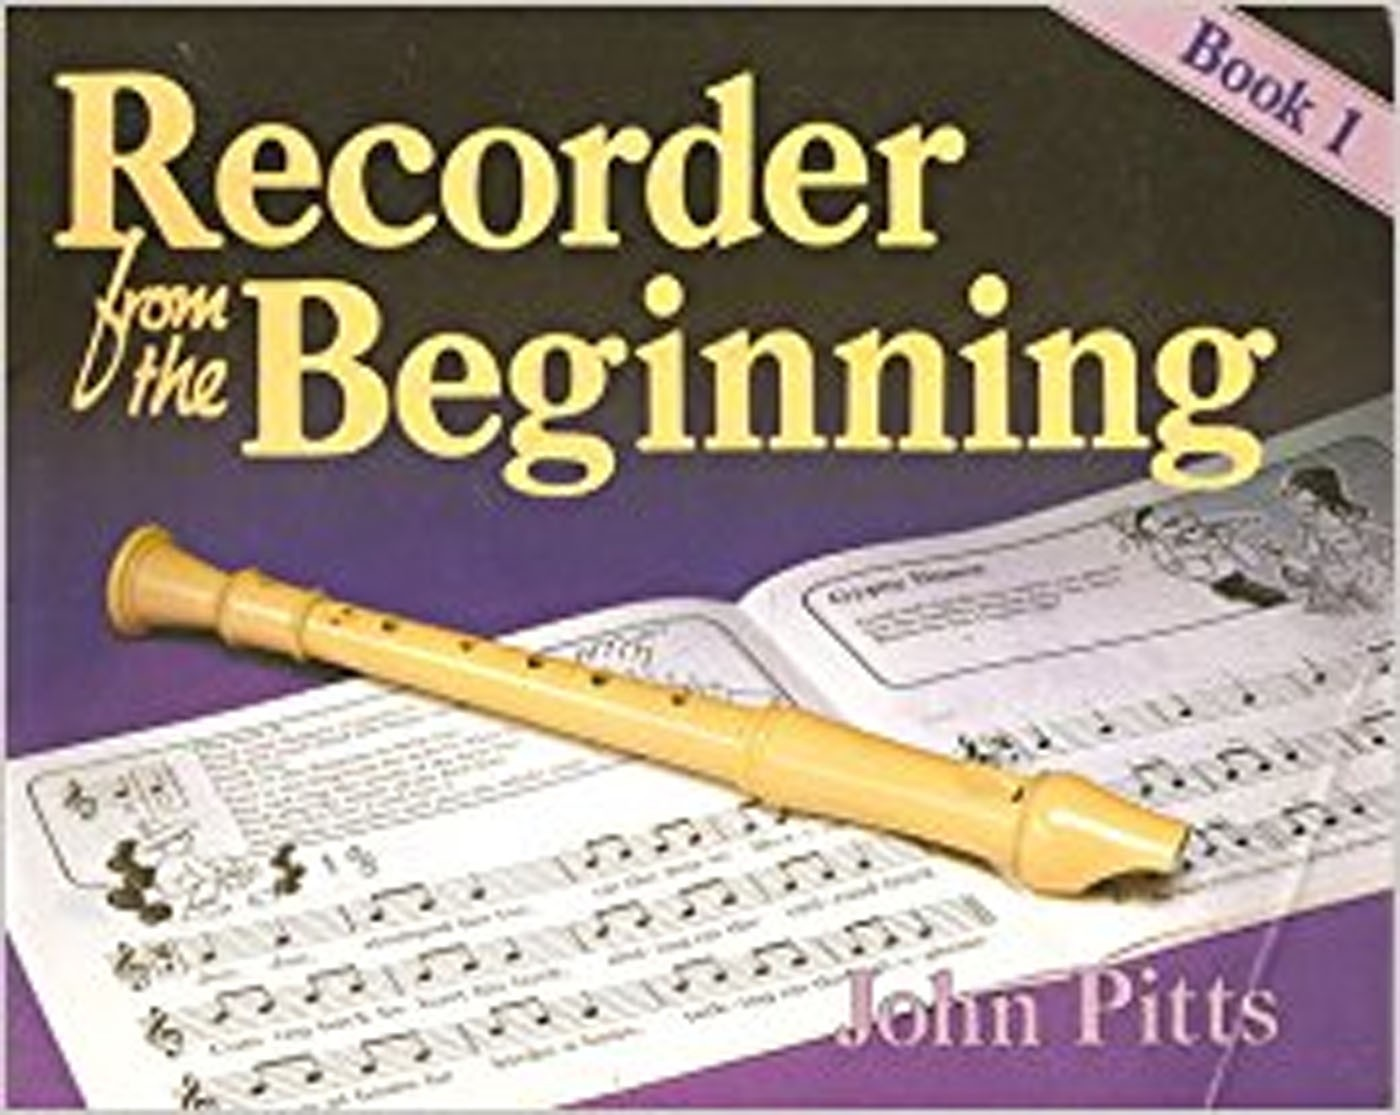 Recorder From The Beginning Book 1 Pupil's KS2 7-11 Years John Pitts S155